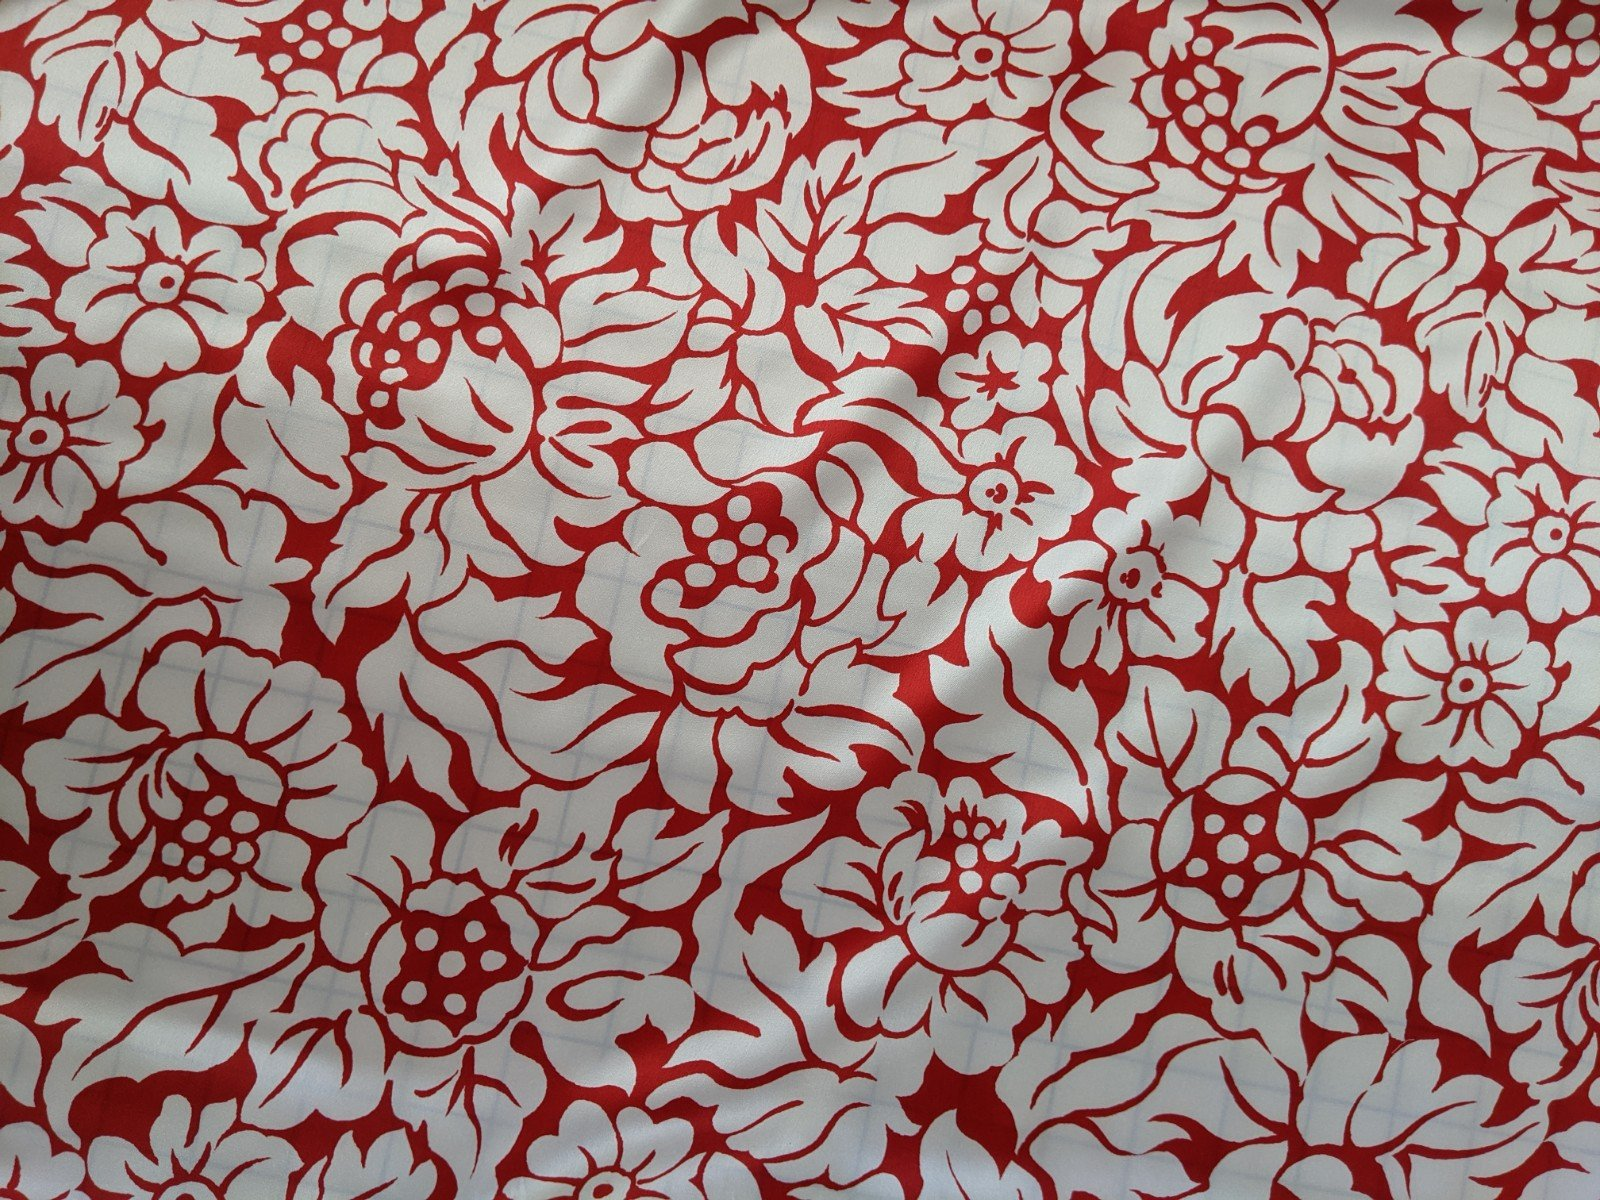 100% Silk - Red and White Floral